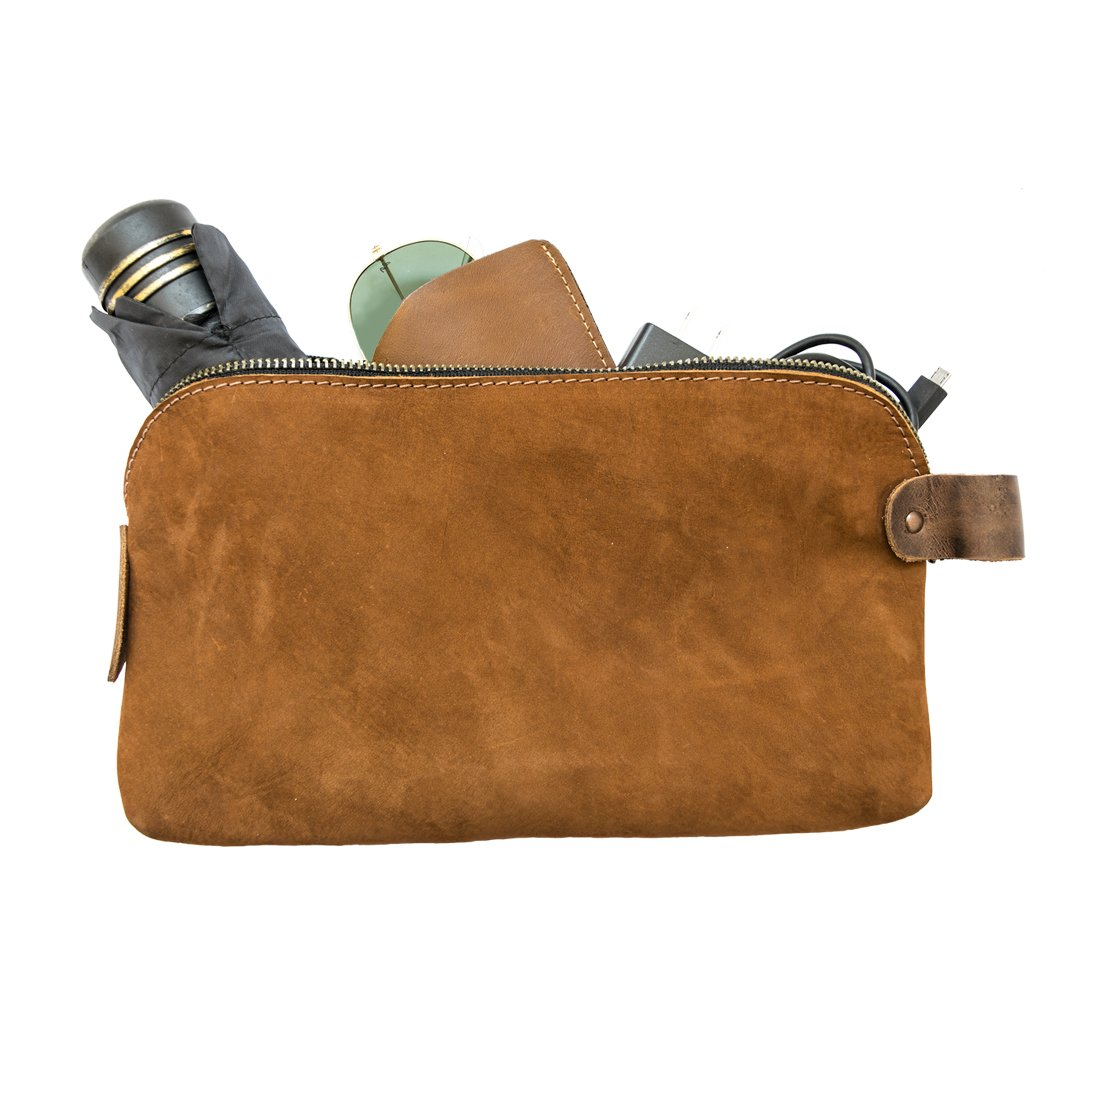 Large All Purpose Dopp Kit Utility Bag (Cords, Chargers, Tools, School / Office Supplies) Handmade by Hide & Drink :: Swayze Suede